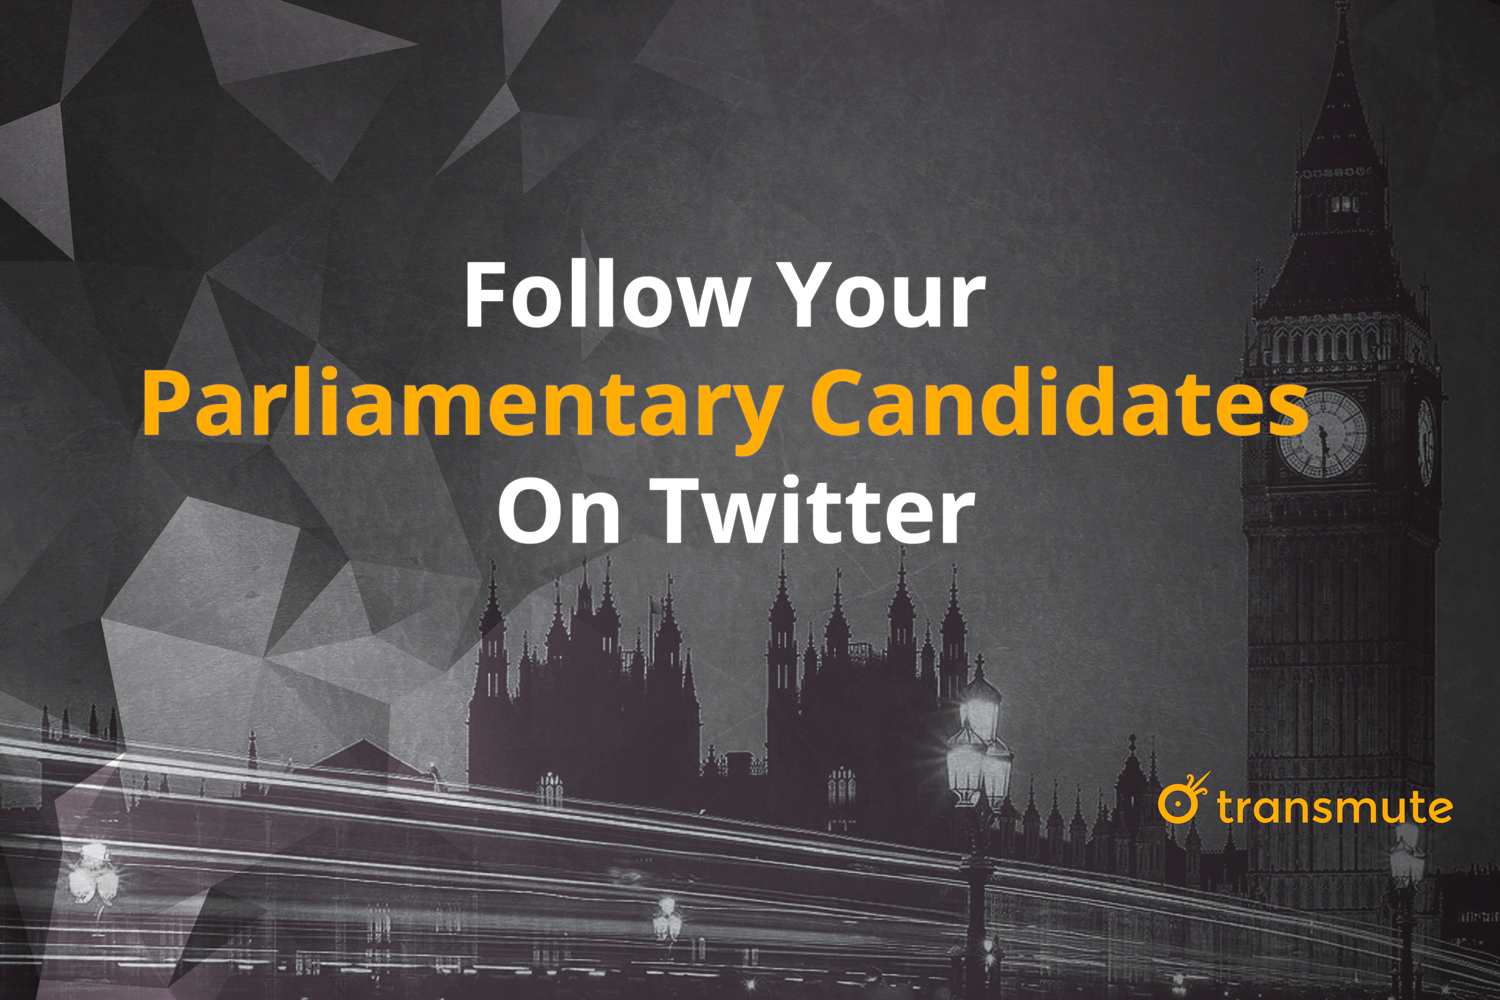 List Of The 2015 Uk General Election Candidates On Twitter